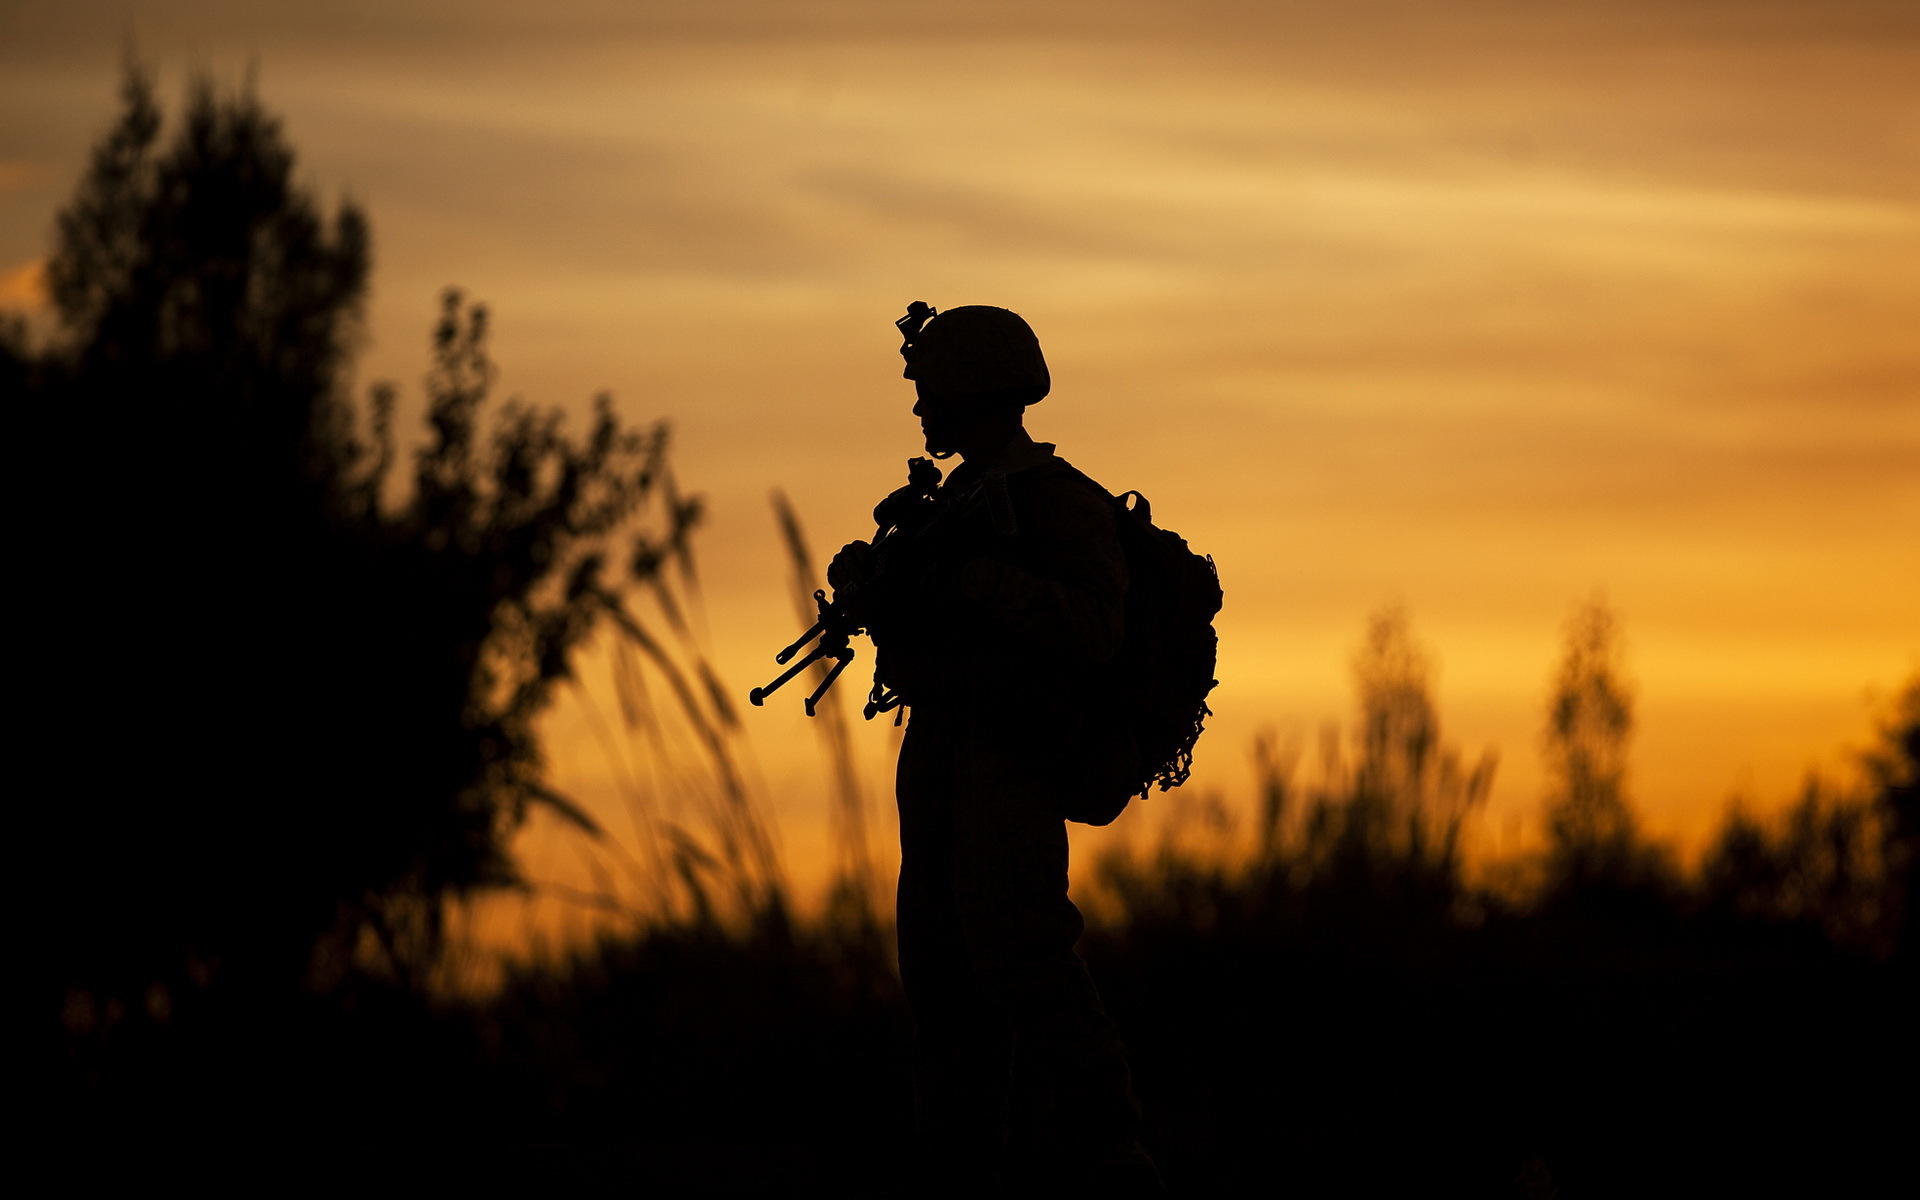 soldier silhouette wallpaper 43497